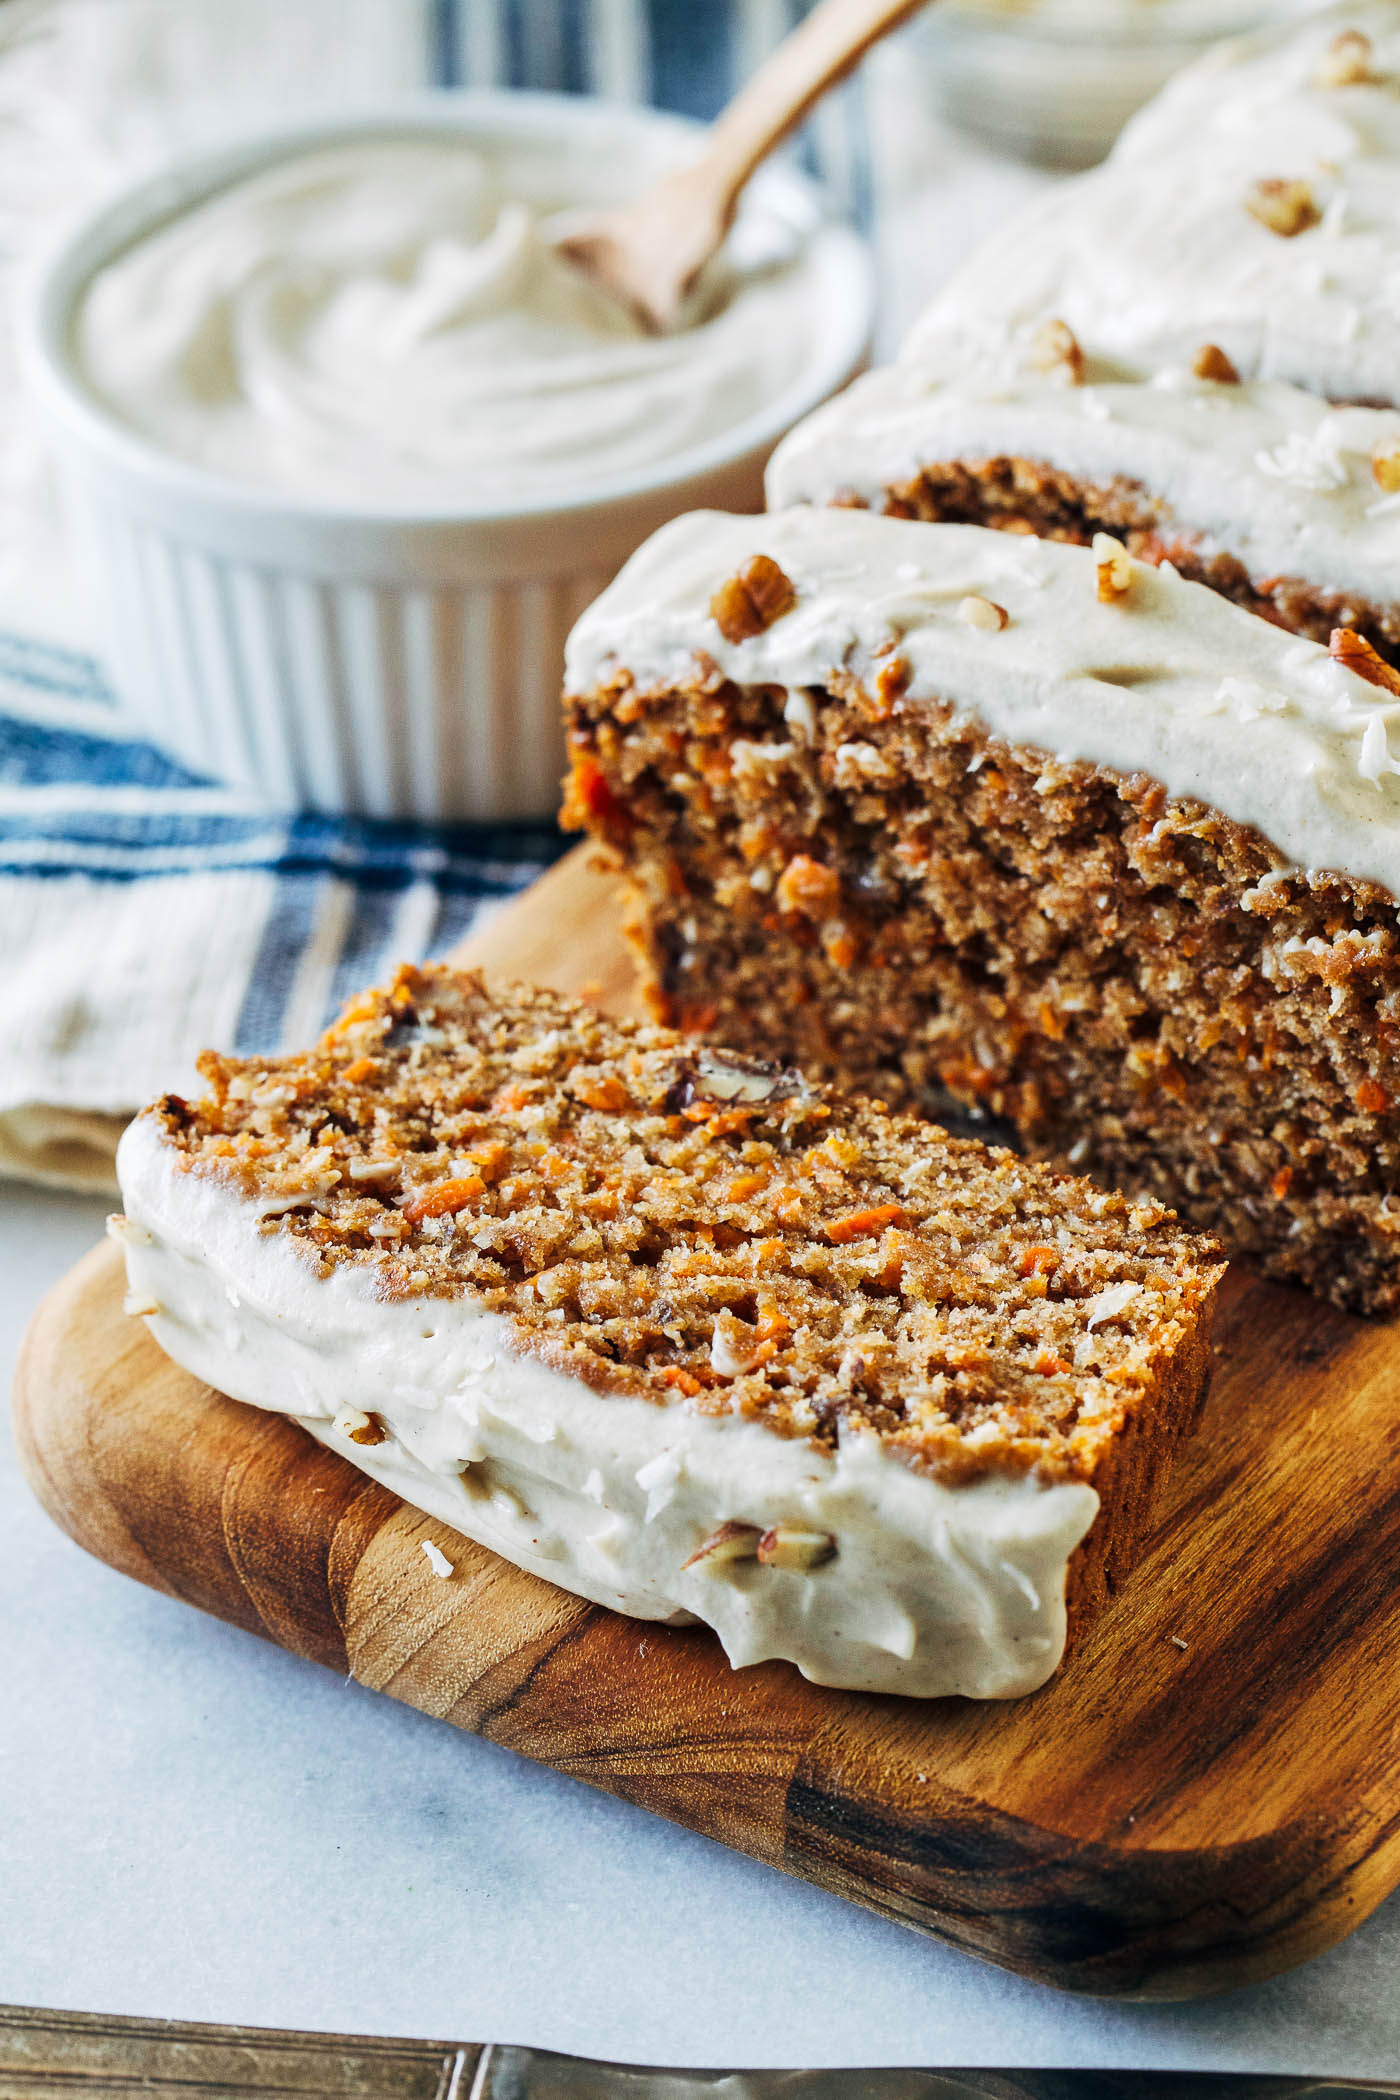 Vegan Cream Cheese Icing For Carrot Cake